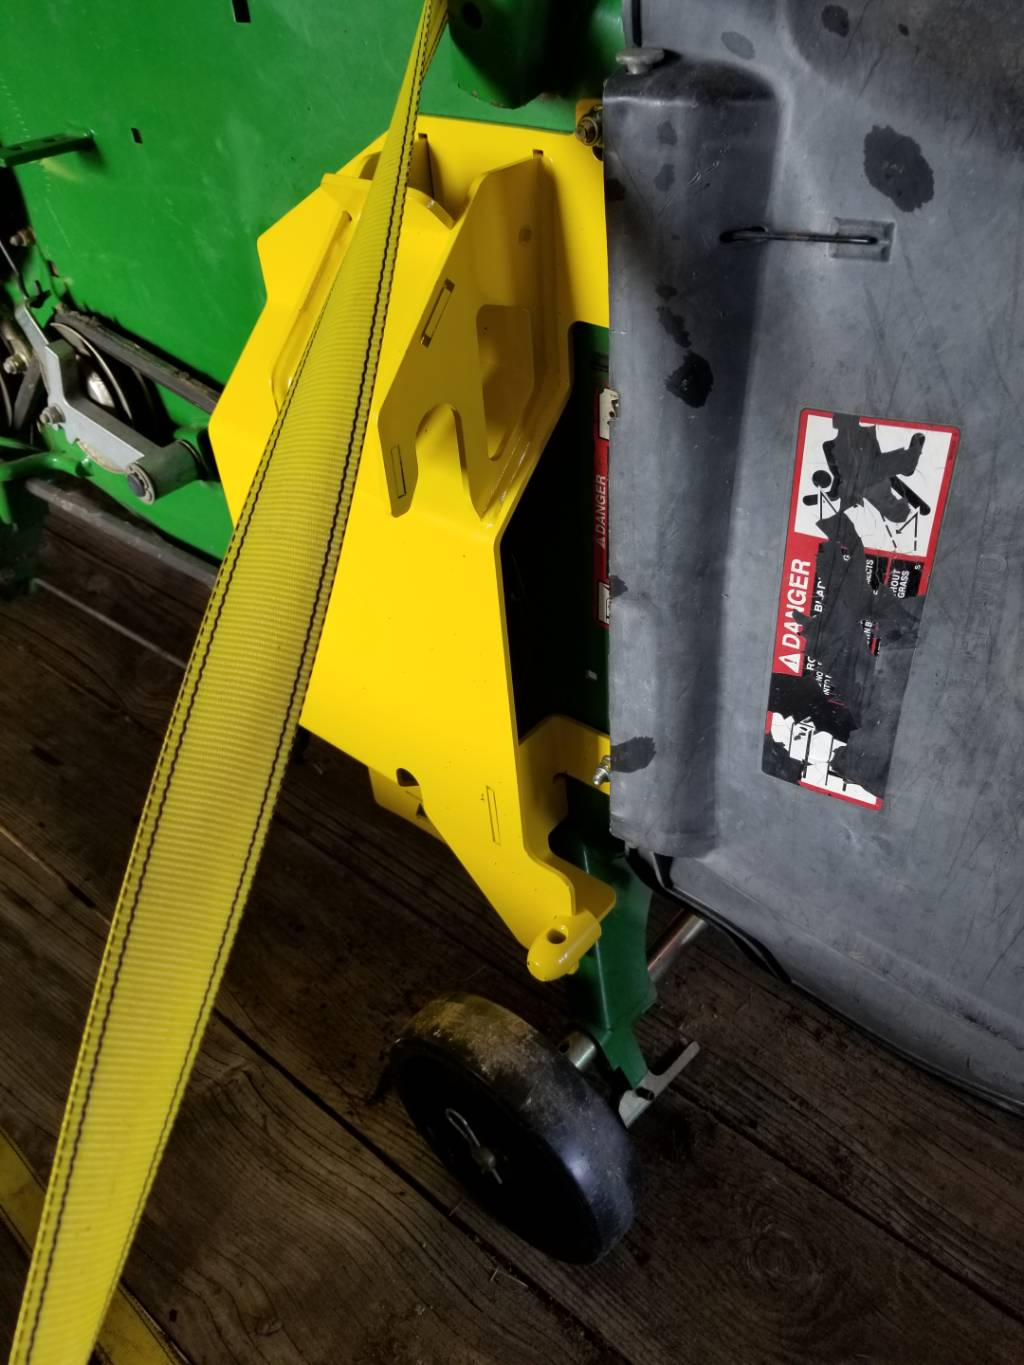 Greenpartstore John Deere Parts And More Parts For >> New John Deere Load N Go Brackets Bxx10241 For 60d 7